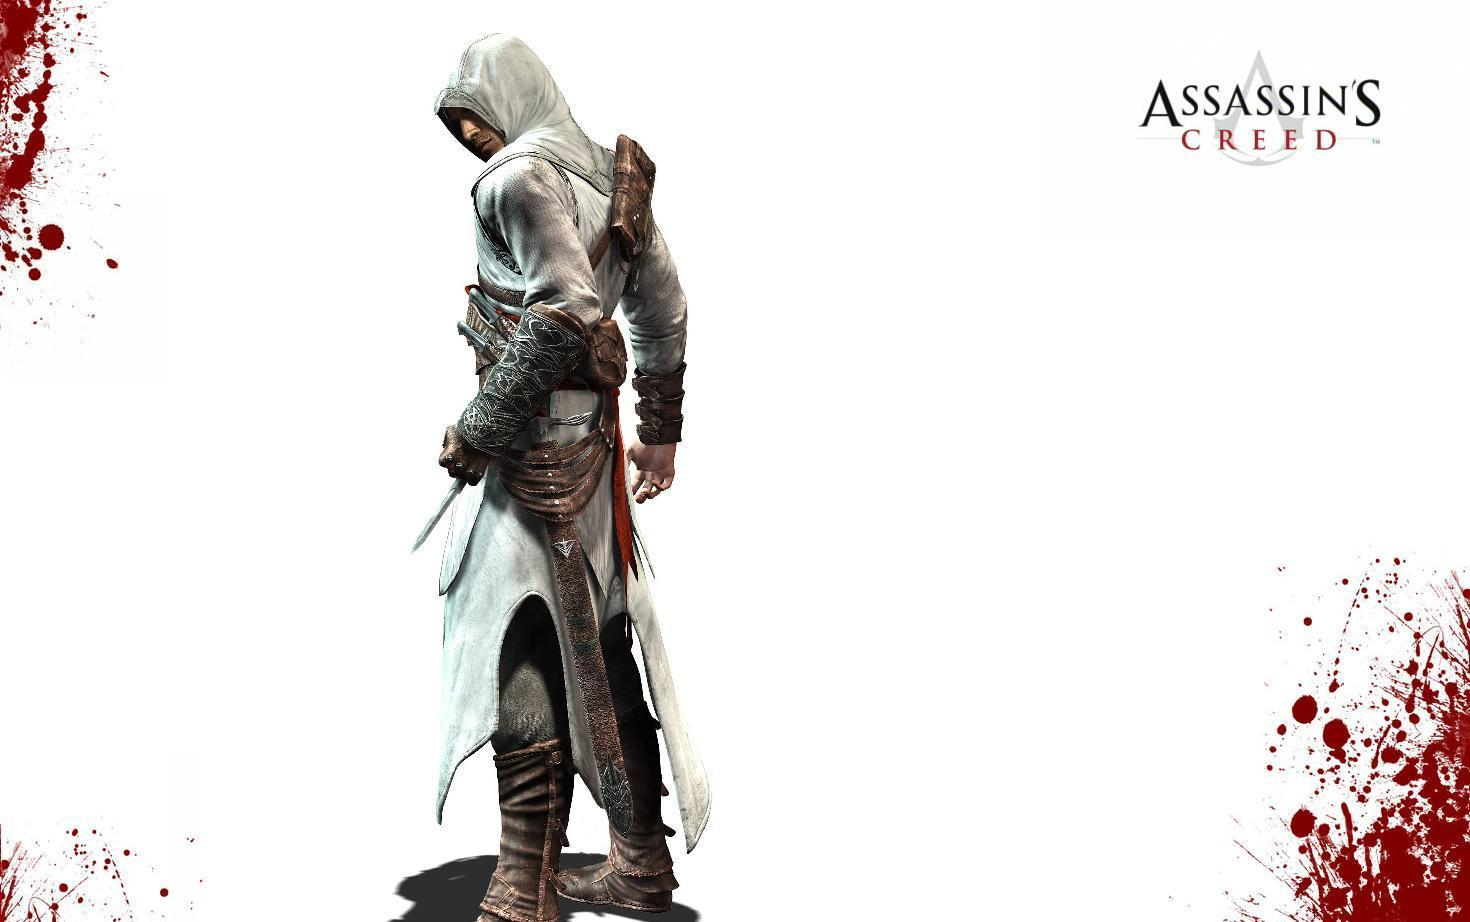 assassins creed Altair warrior HD Wallpaper